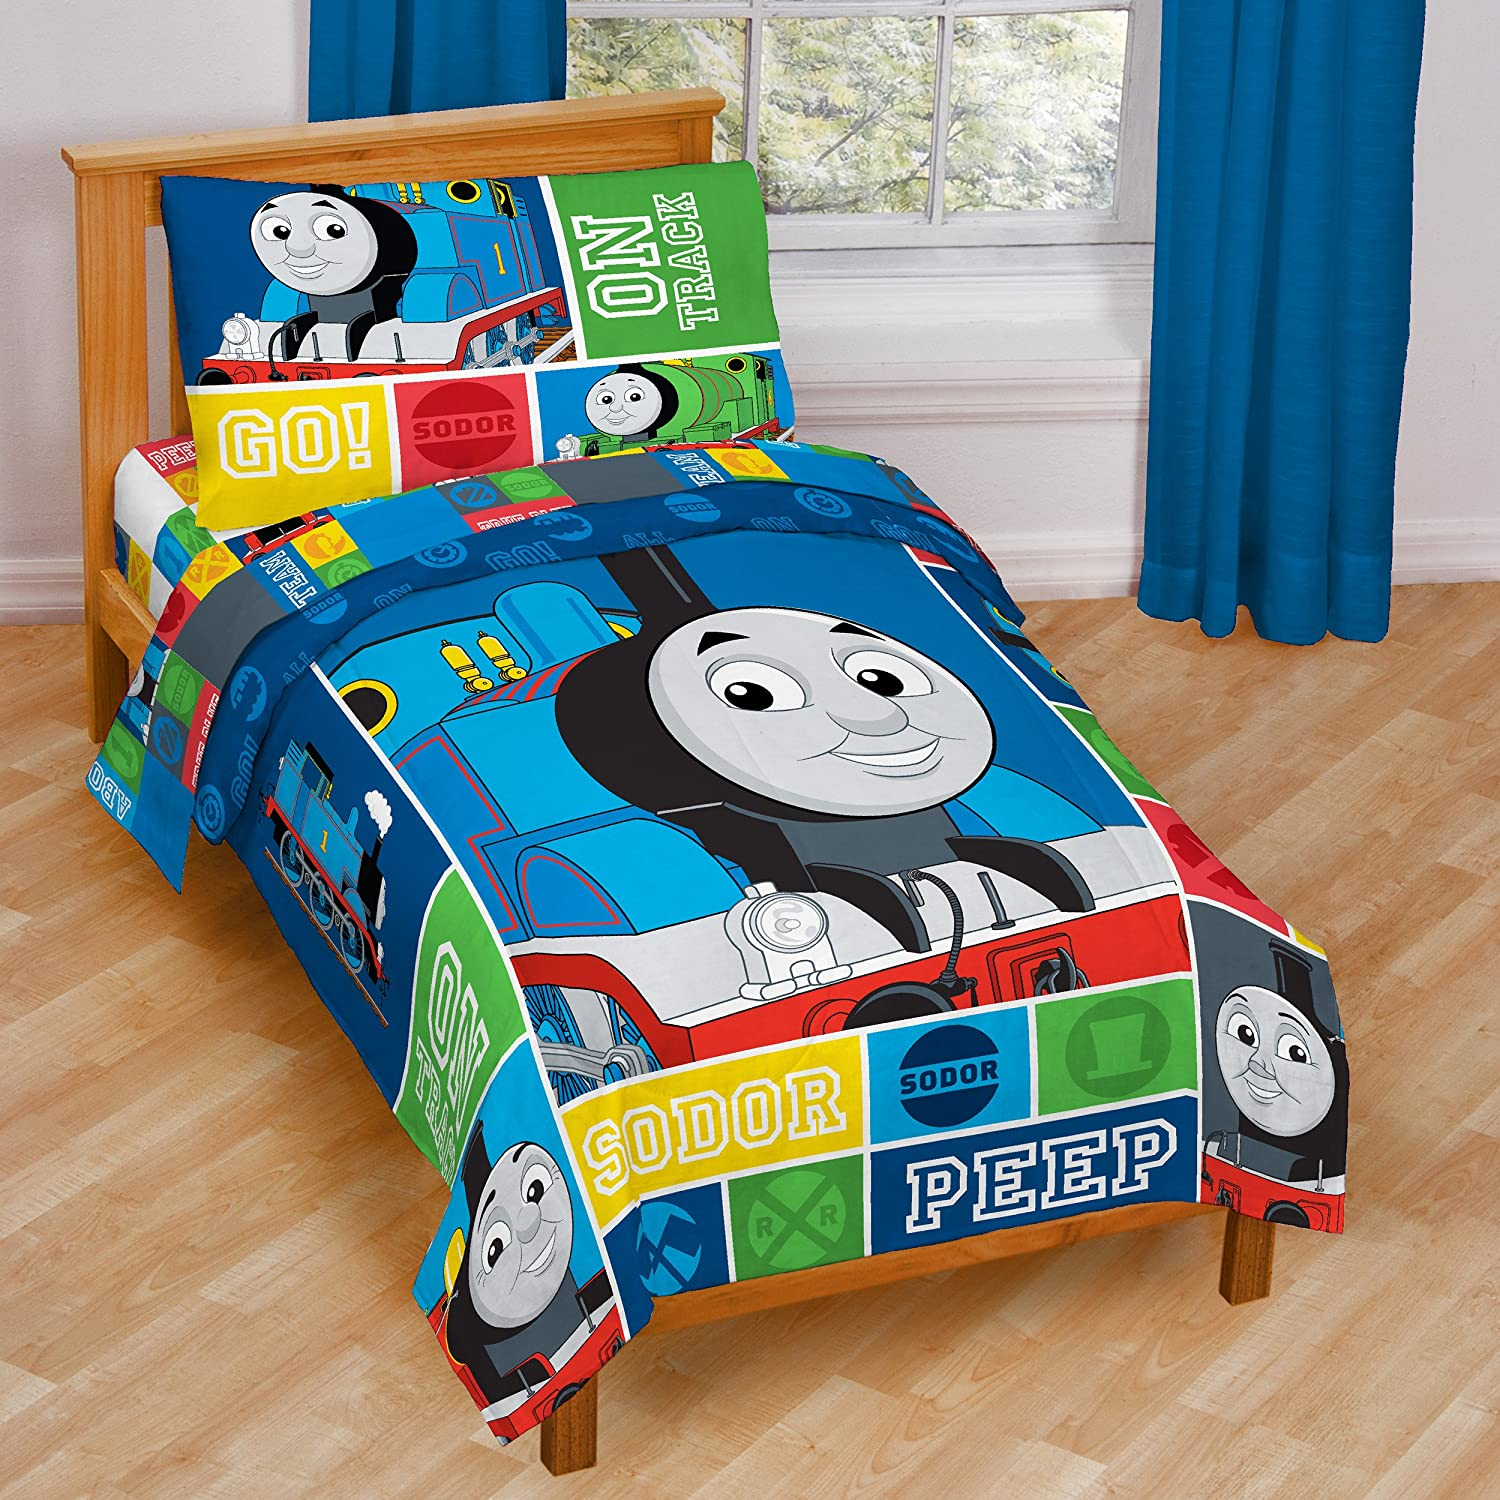 Thomas Tank Train On Track Toddler Bedding Set  Amazon ca  Home   Kitchen. Thomas Tank Train On Track Toddler Bedding Set  Amazon ca  Home